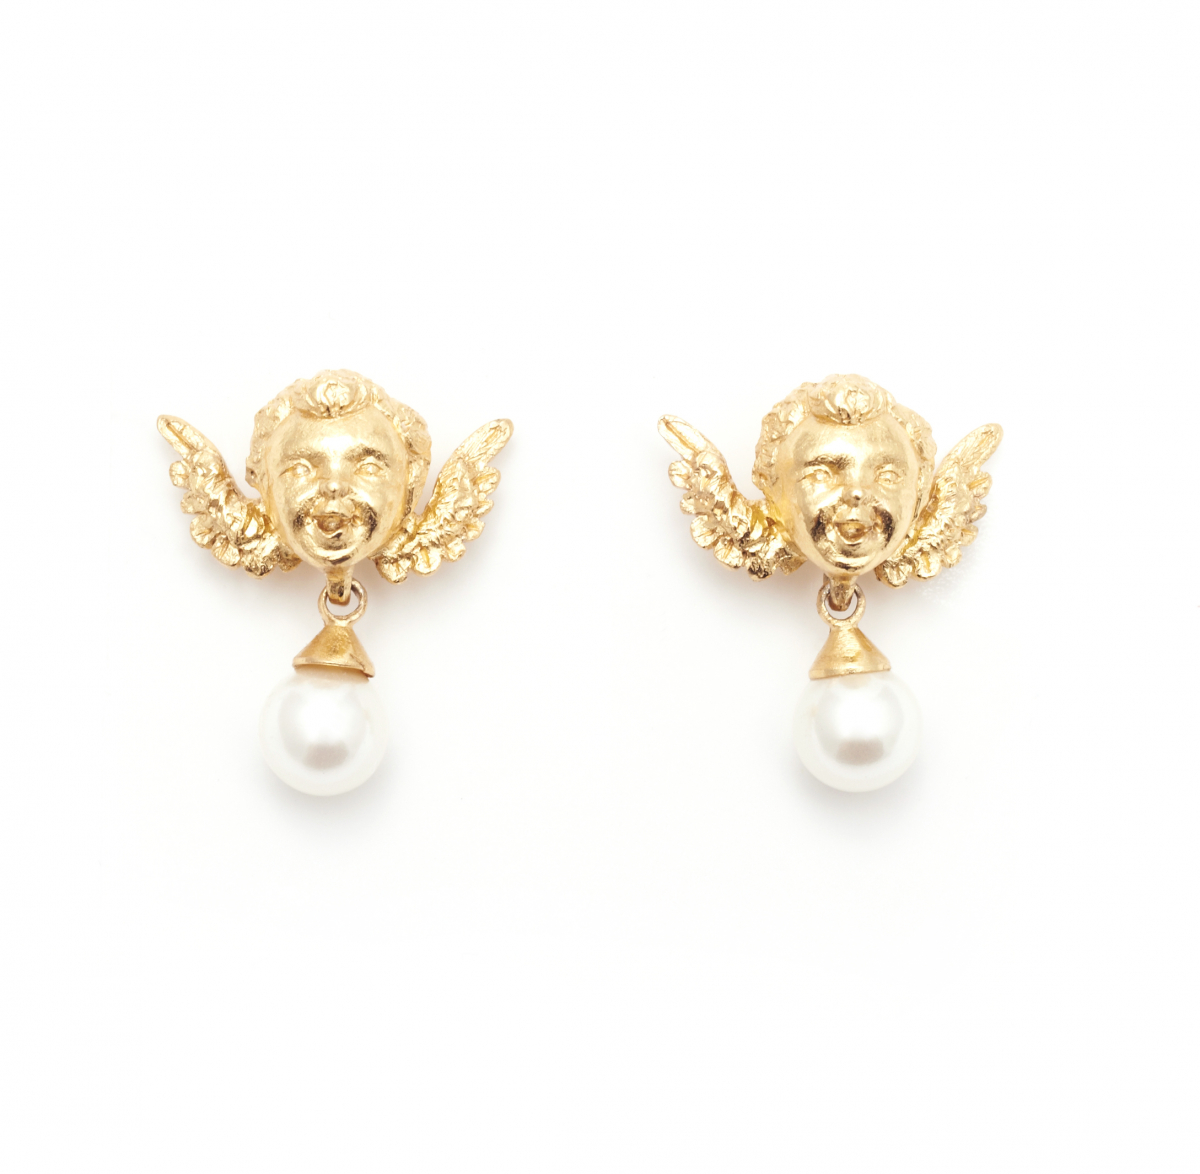 CHERUB  EARRINGS GOLD WITH PEARL